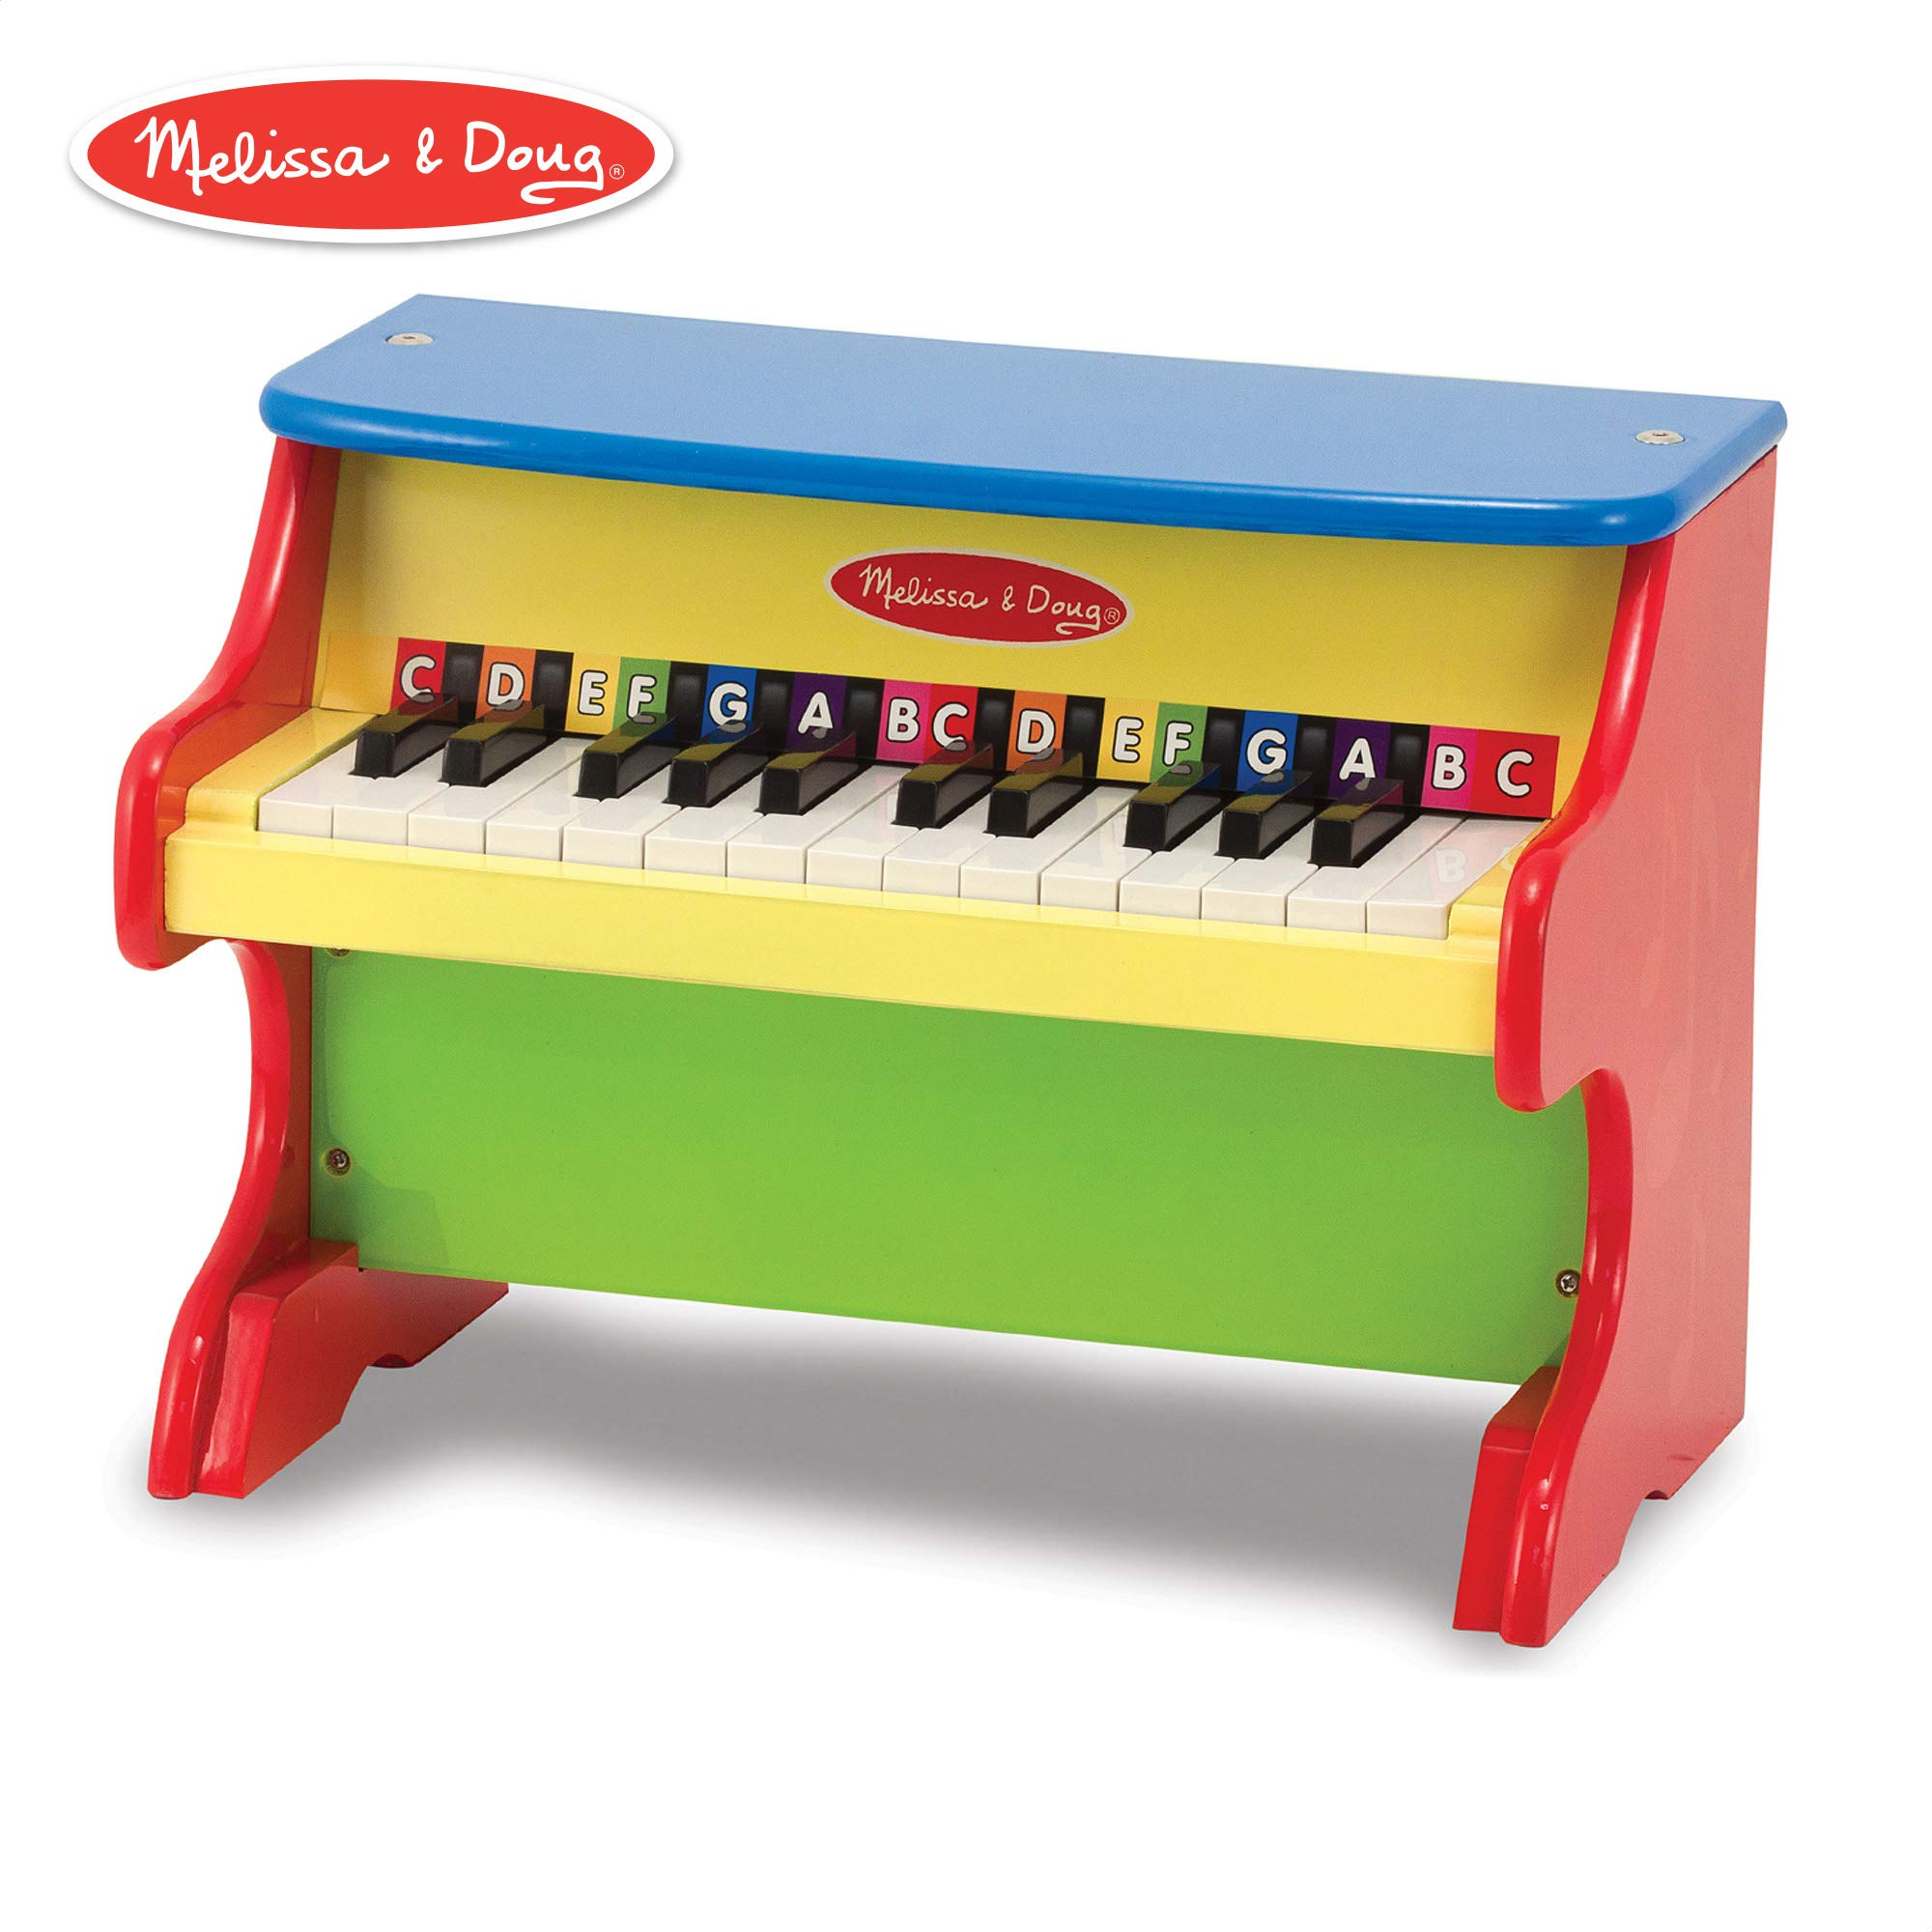 Melissa & Doug Learn-to-Play Piano With 25 Keys and Color-Coded Songbook of 9 Songs by Melissa & Doug